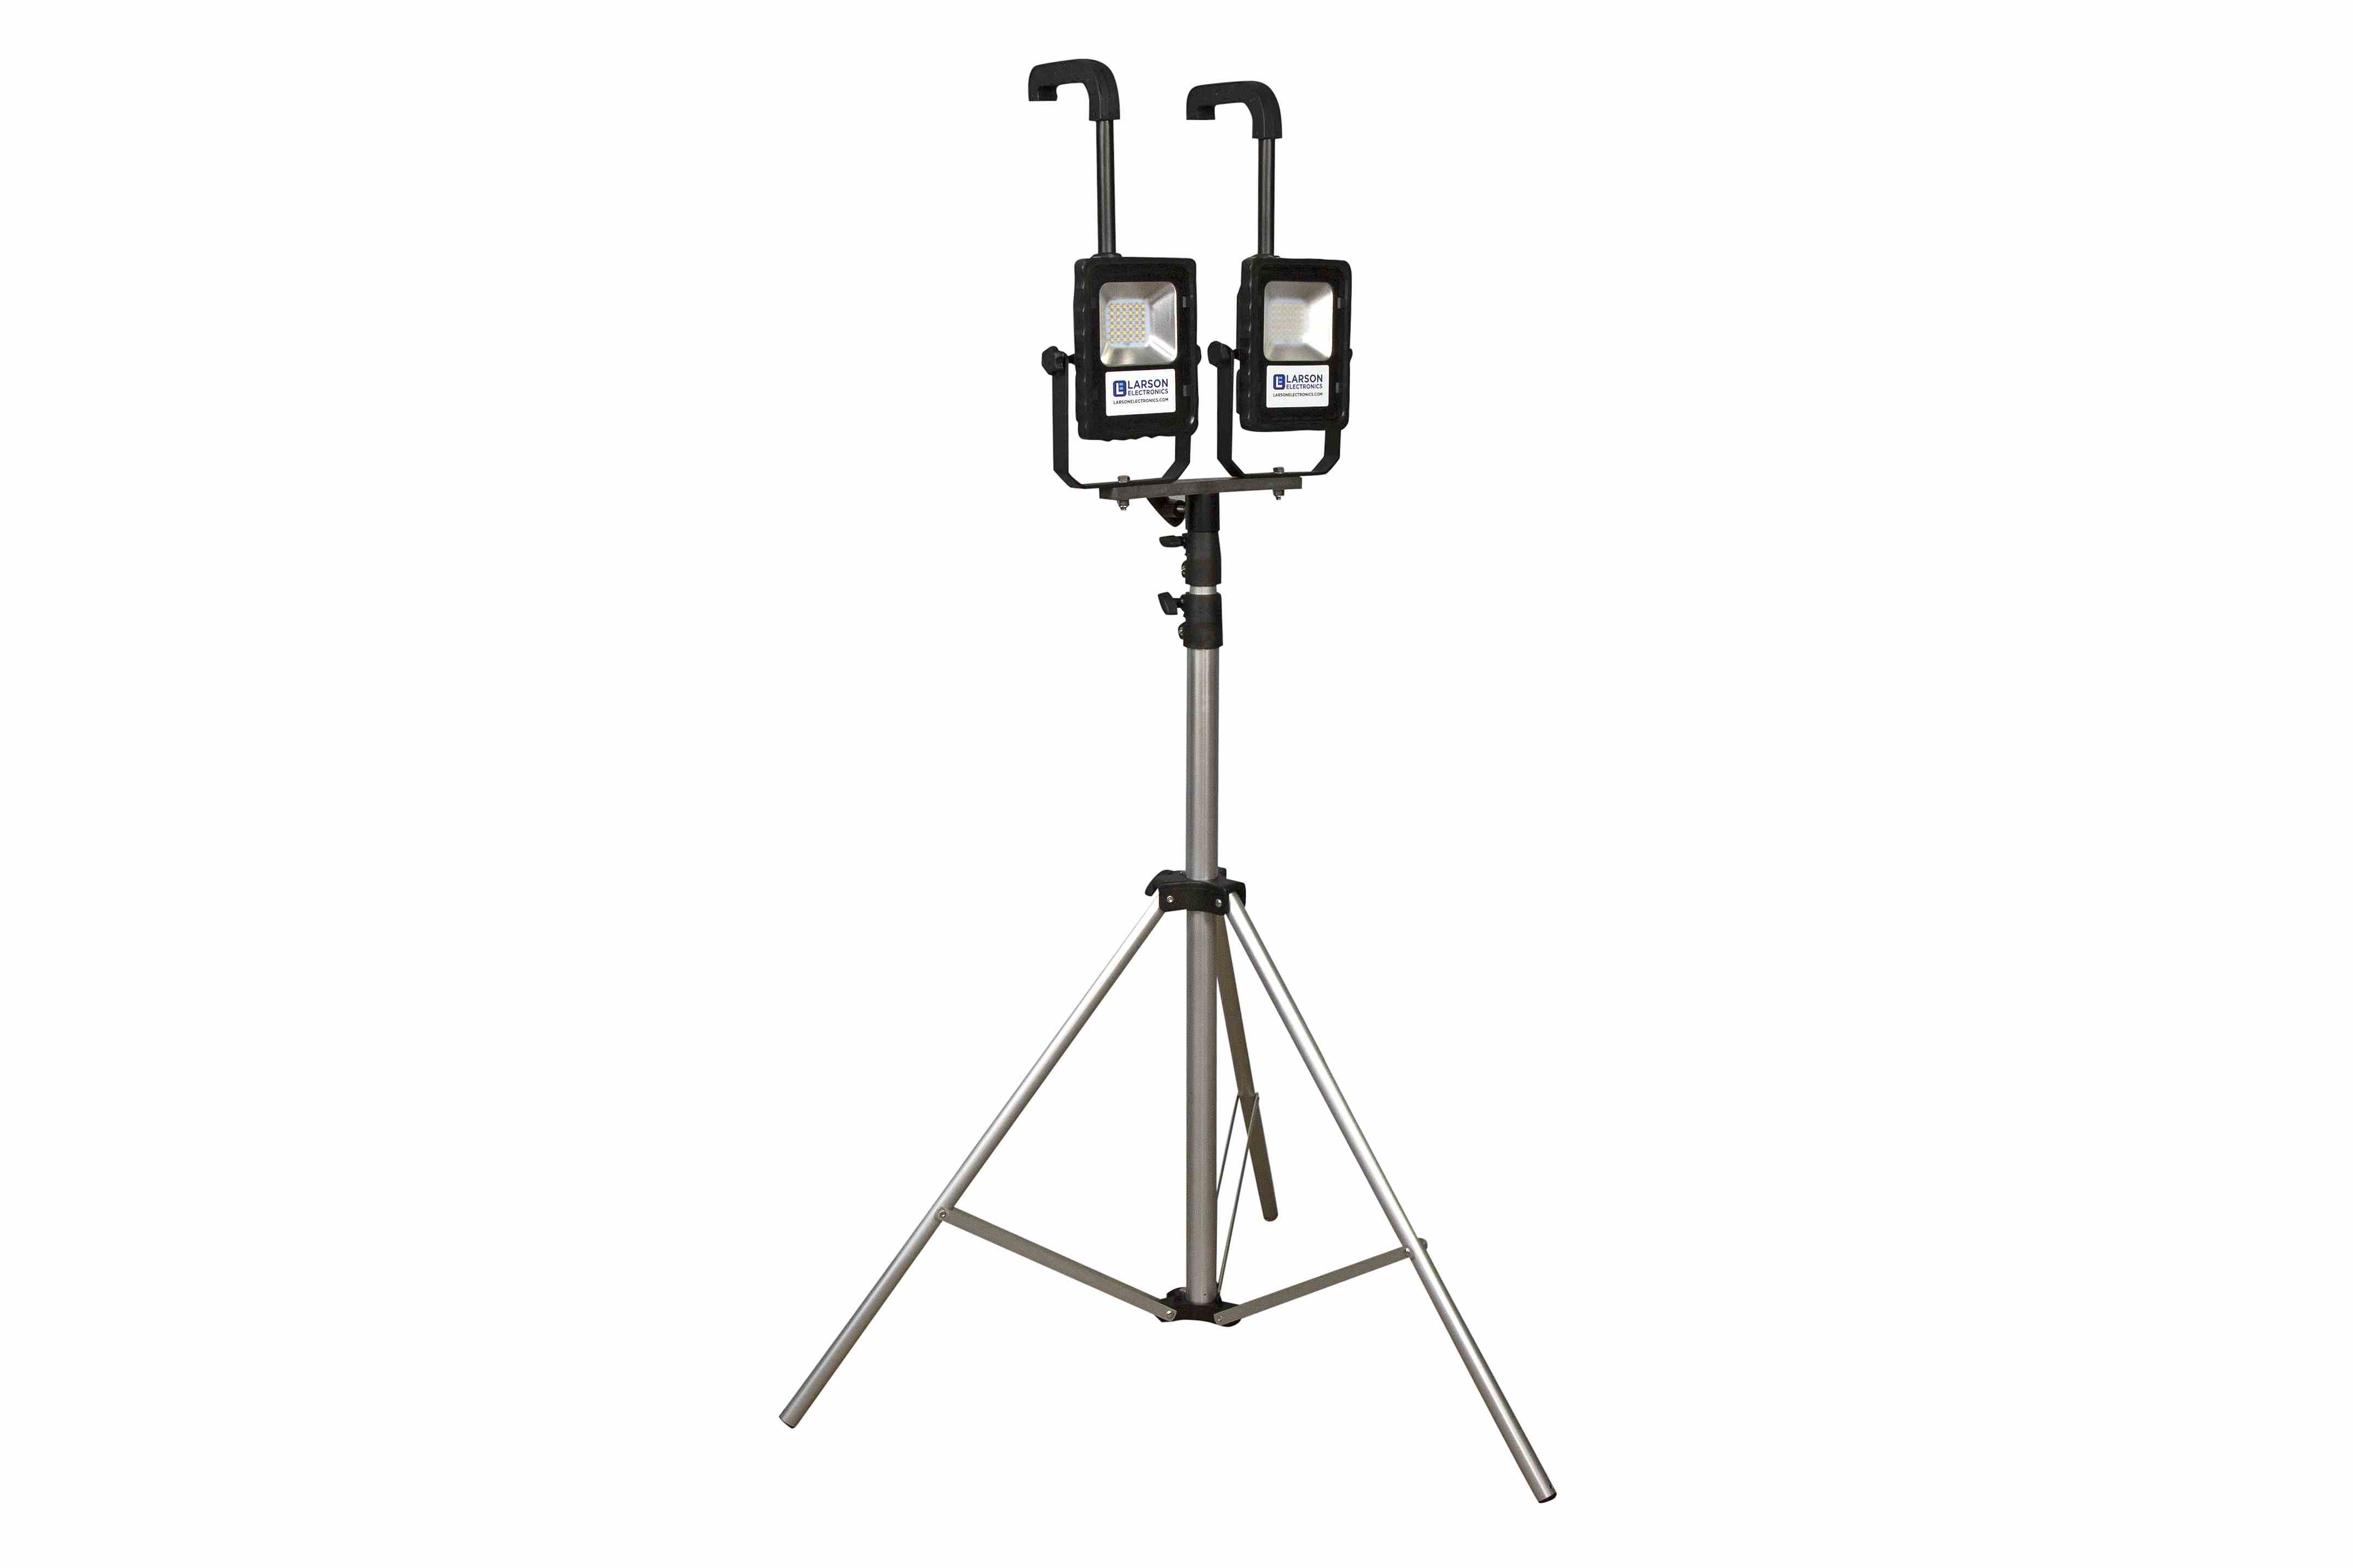 Rechargeable LED Work Area Lights with 3.5' to 10' Adjustable Tripod Mount